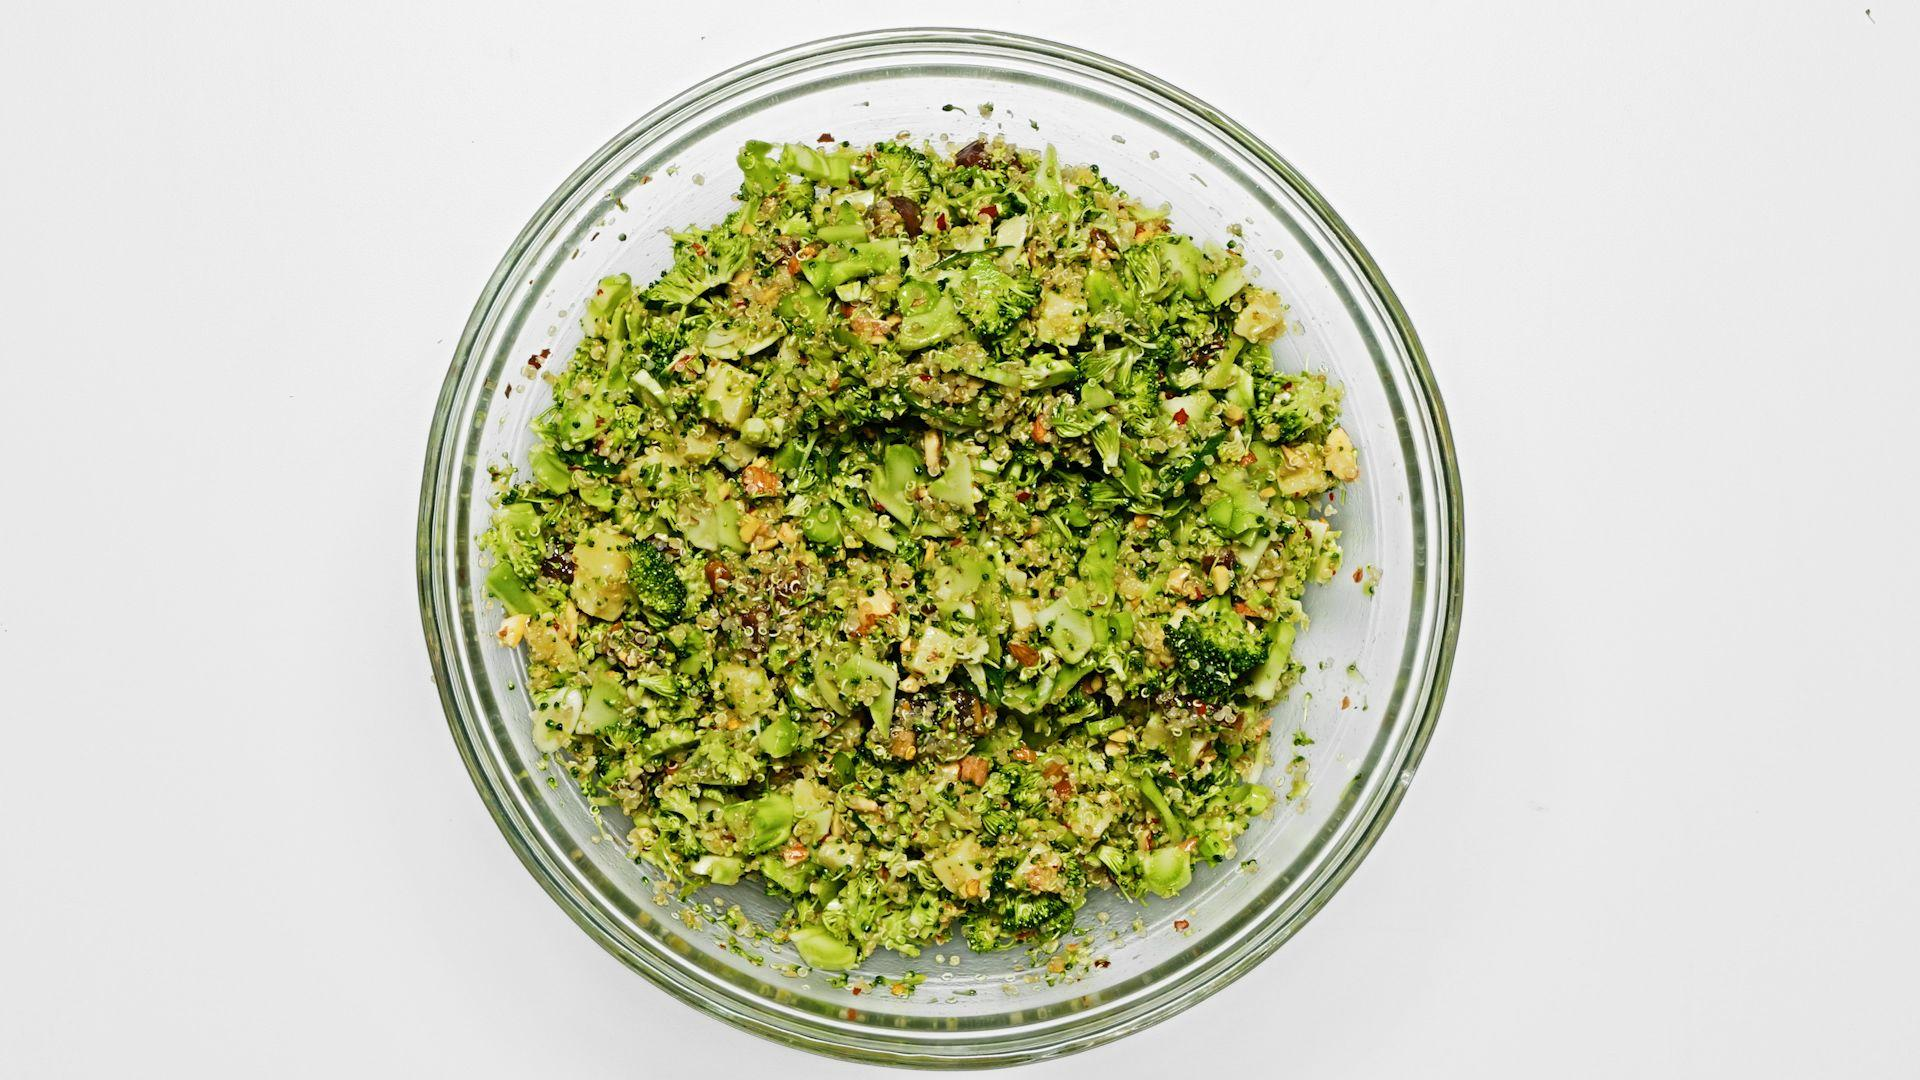 How to Make Broccoli Quinoa Salad